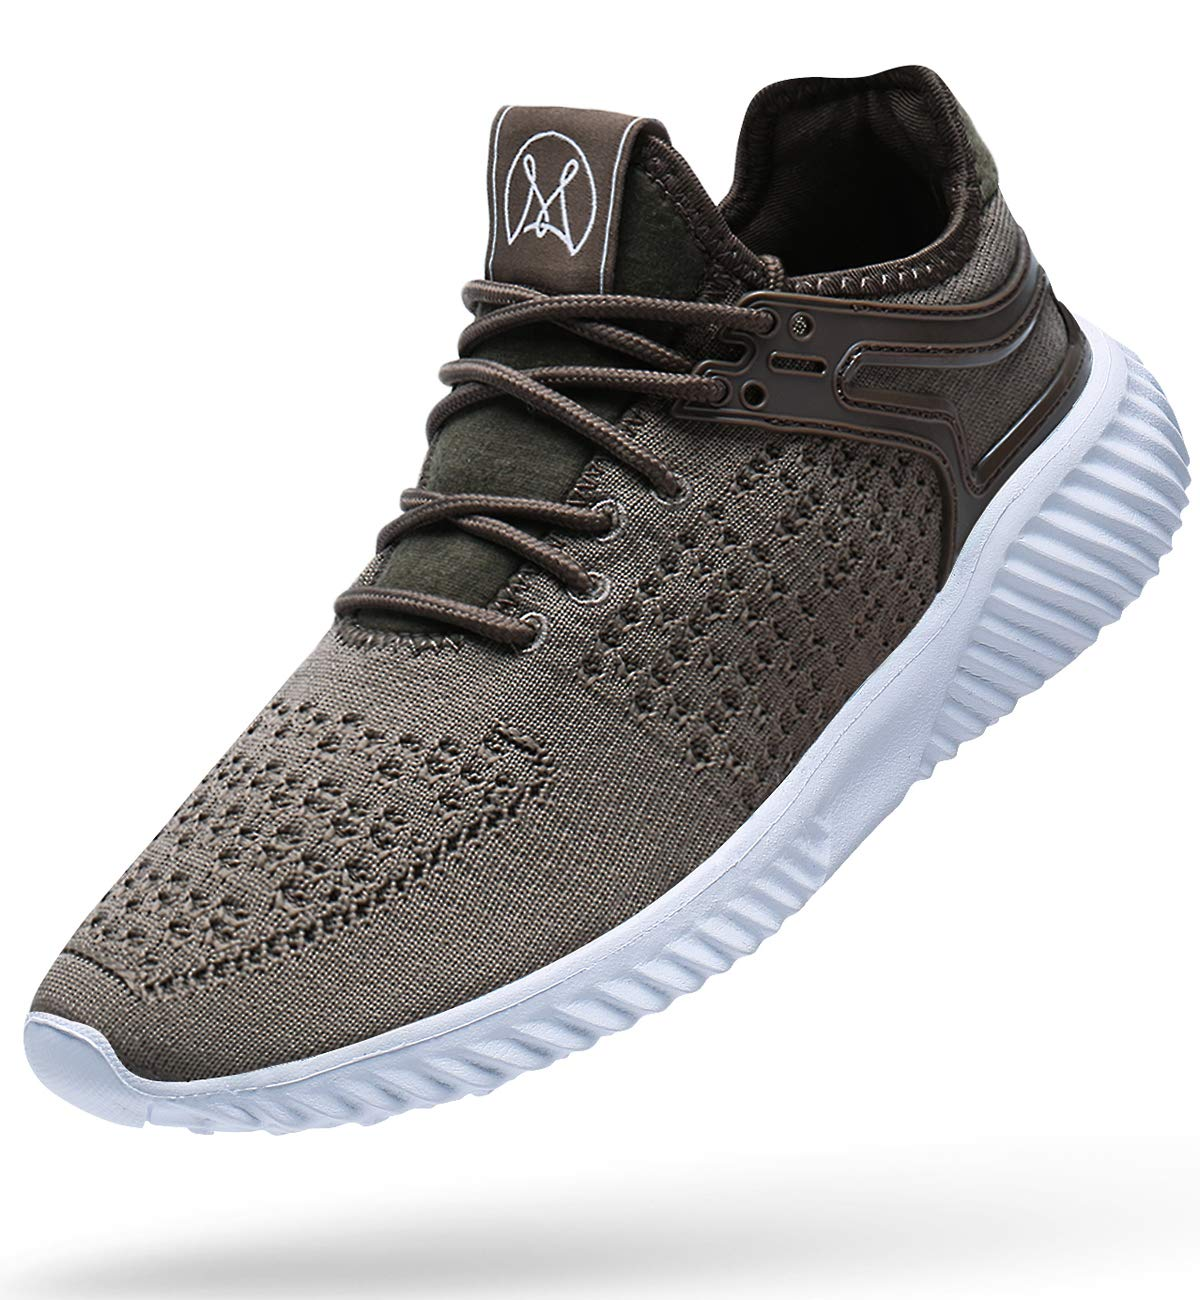 Wonesion Mens Walking Casual Shoes Lightweight Breathable Sneakers Mesh Tennis Gym Running Shoes